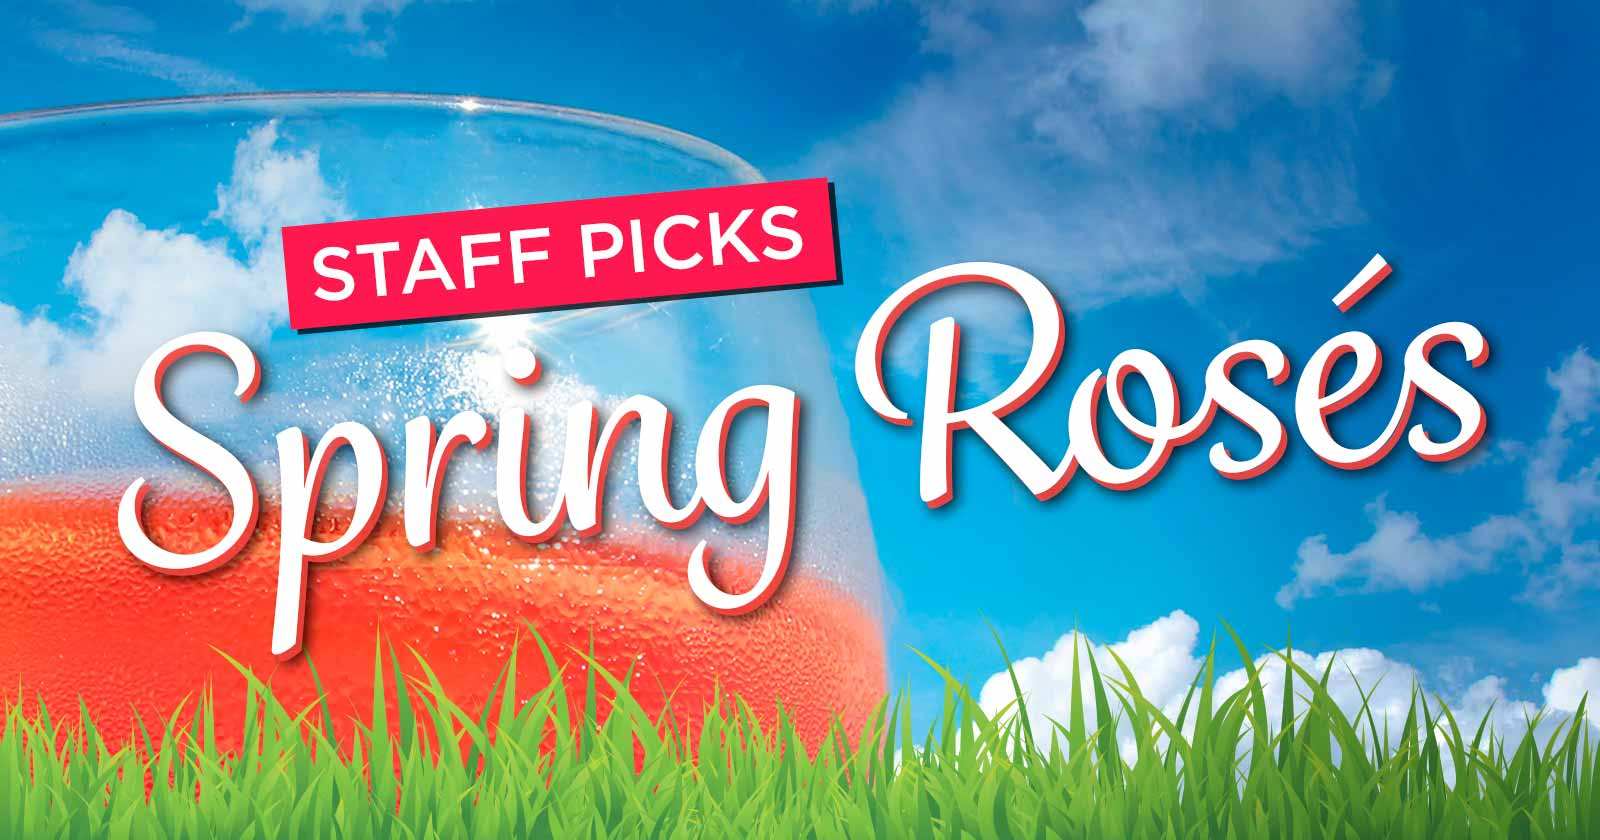 Staff Picks - Spring Roses